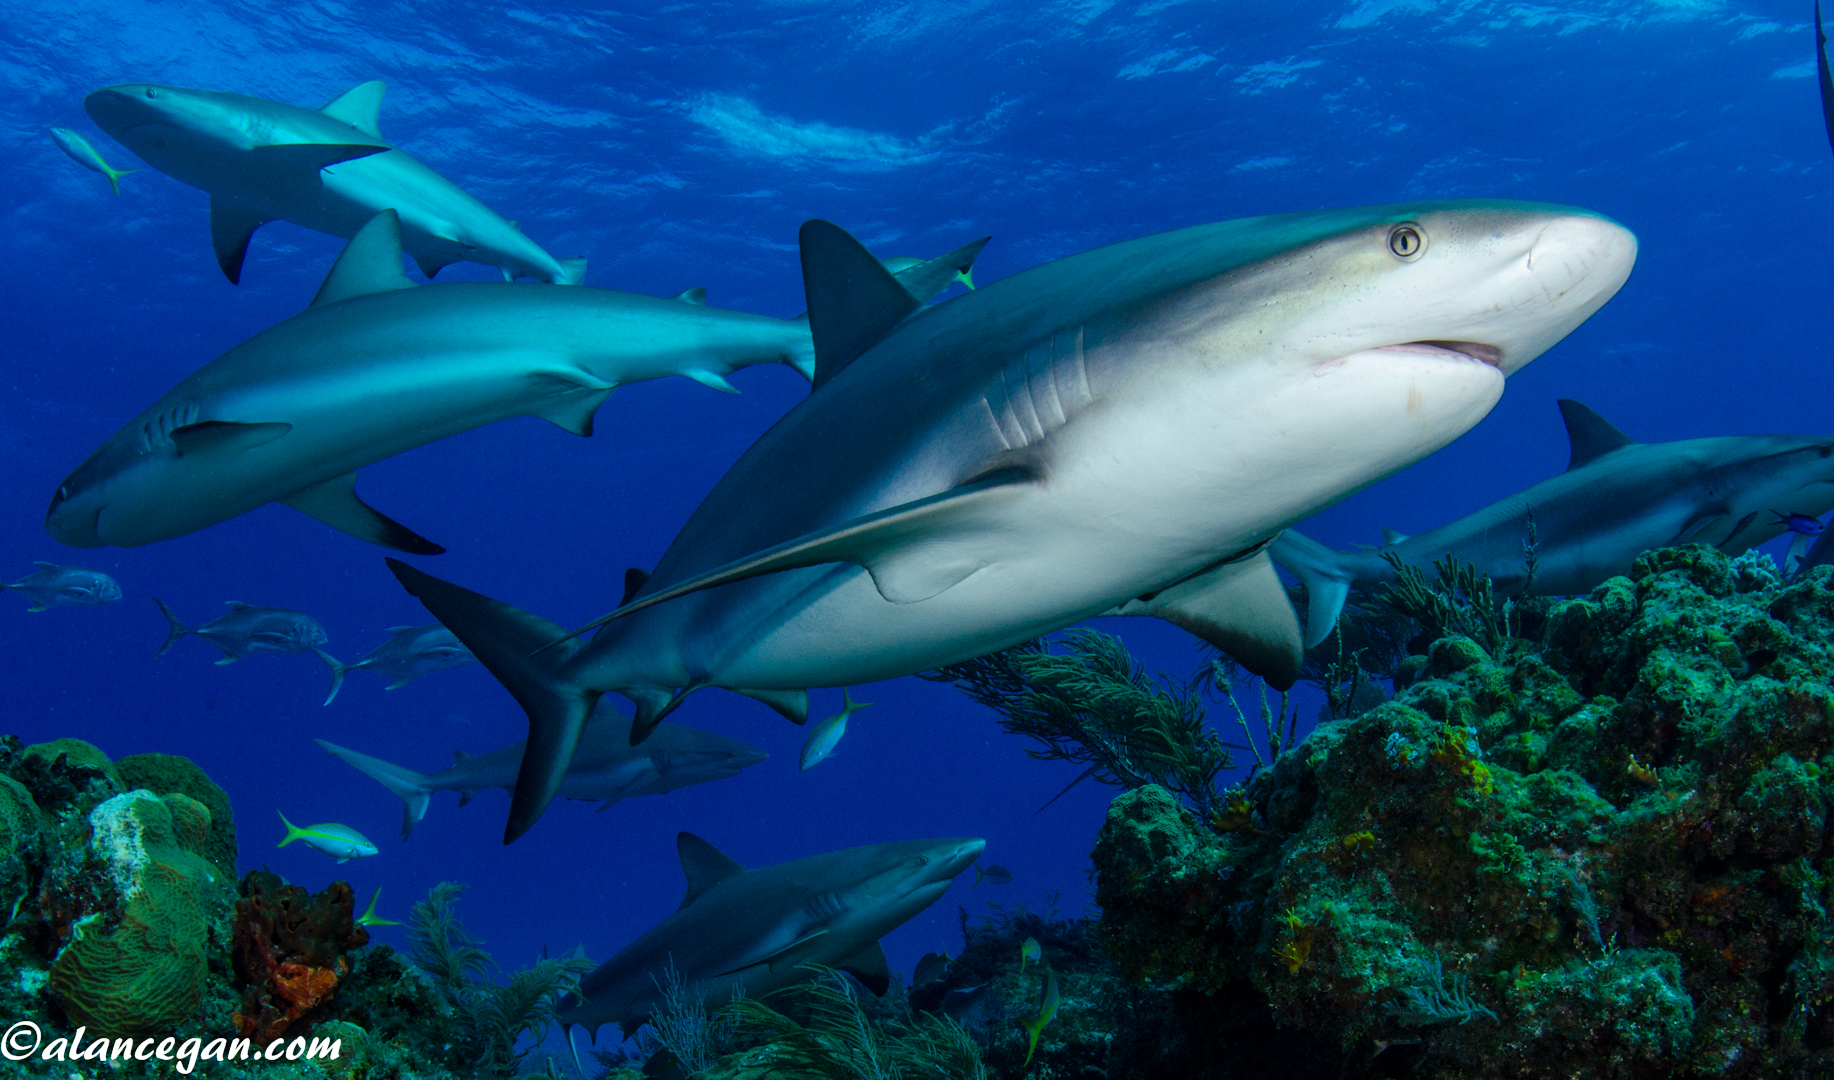 Underwater photograph of a group of Reef Sharks in the Bahamas